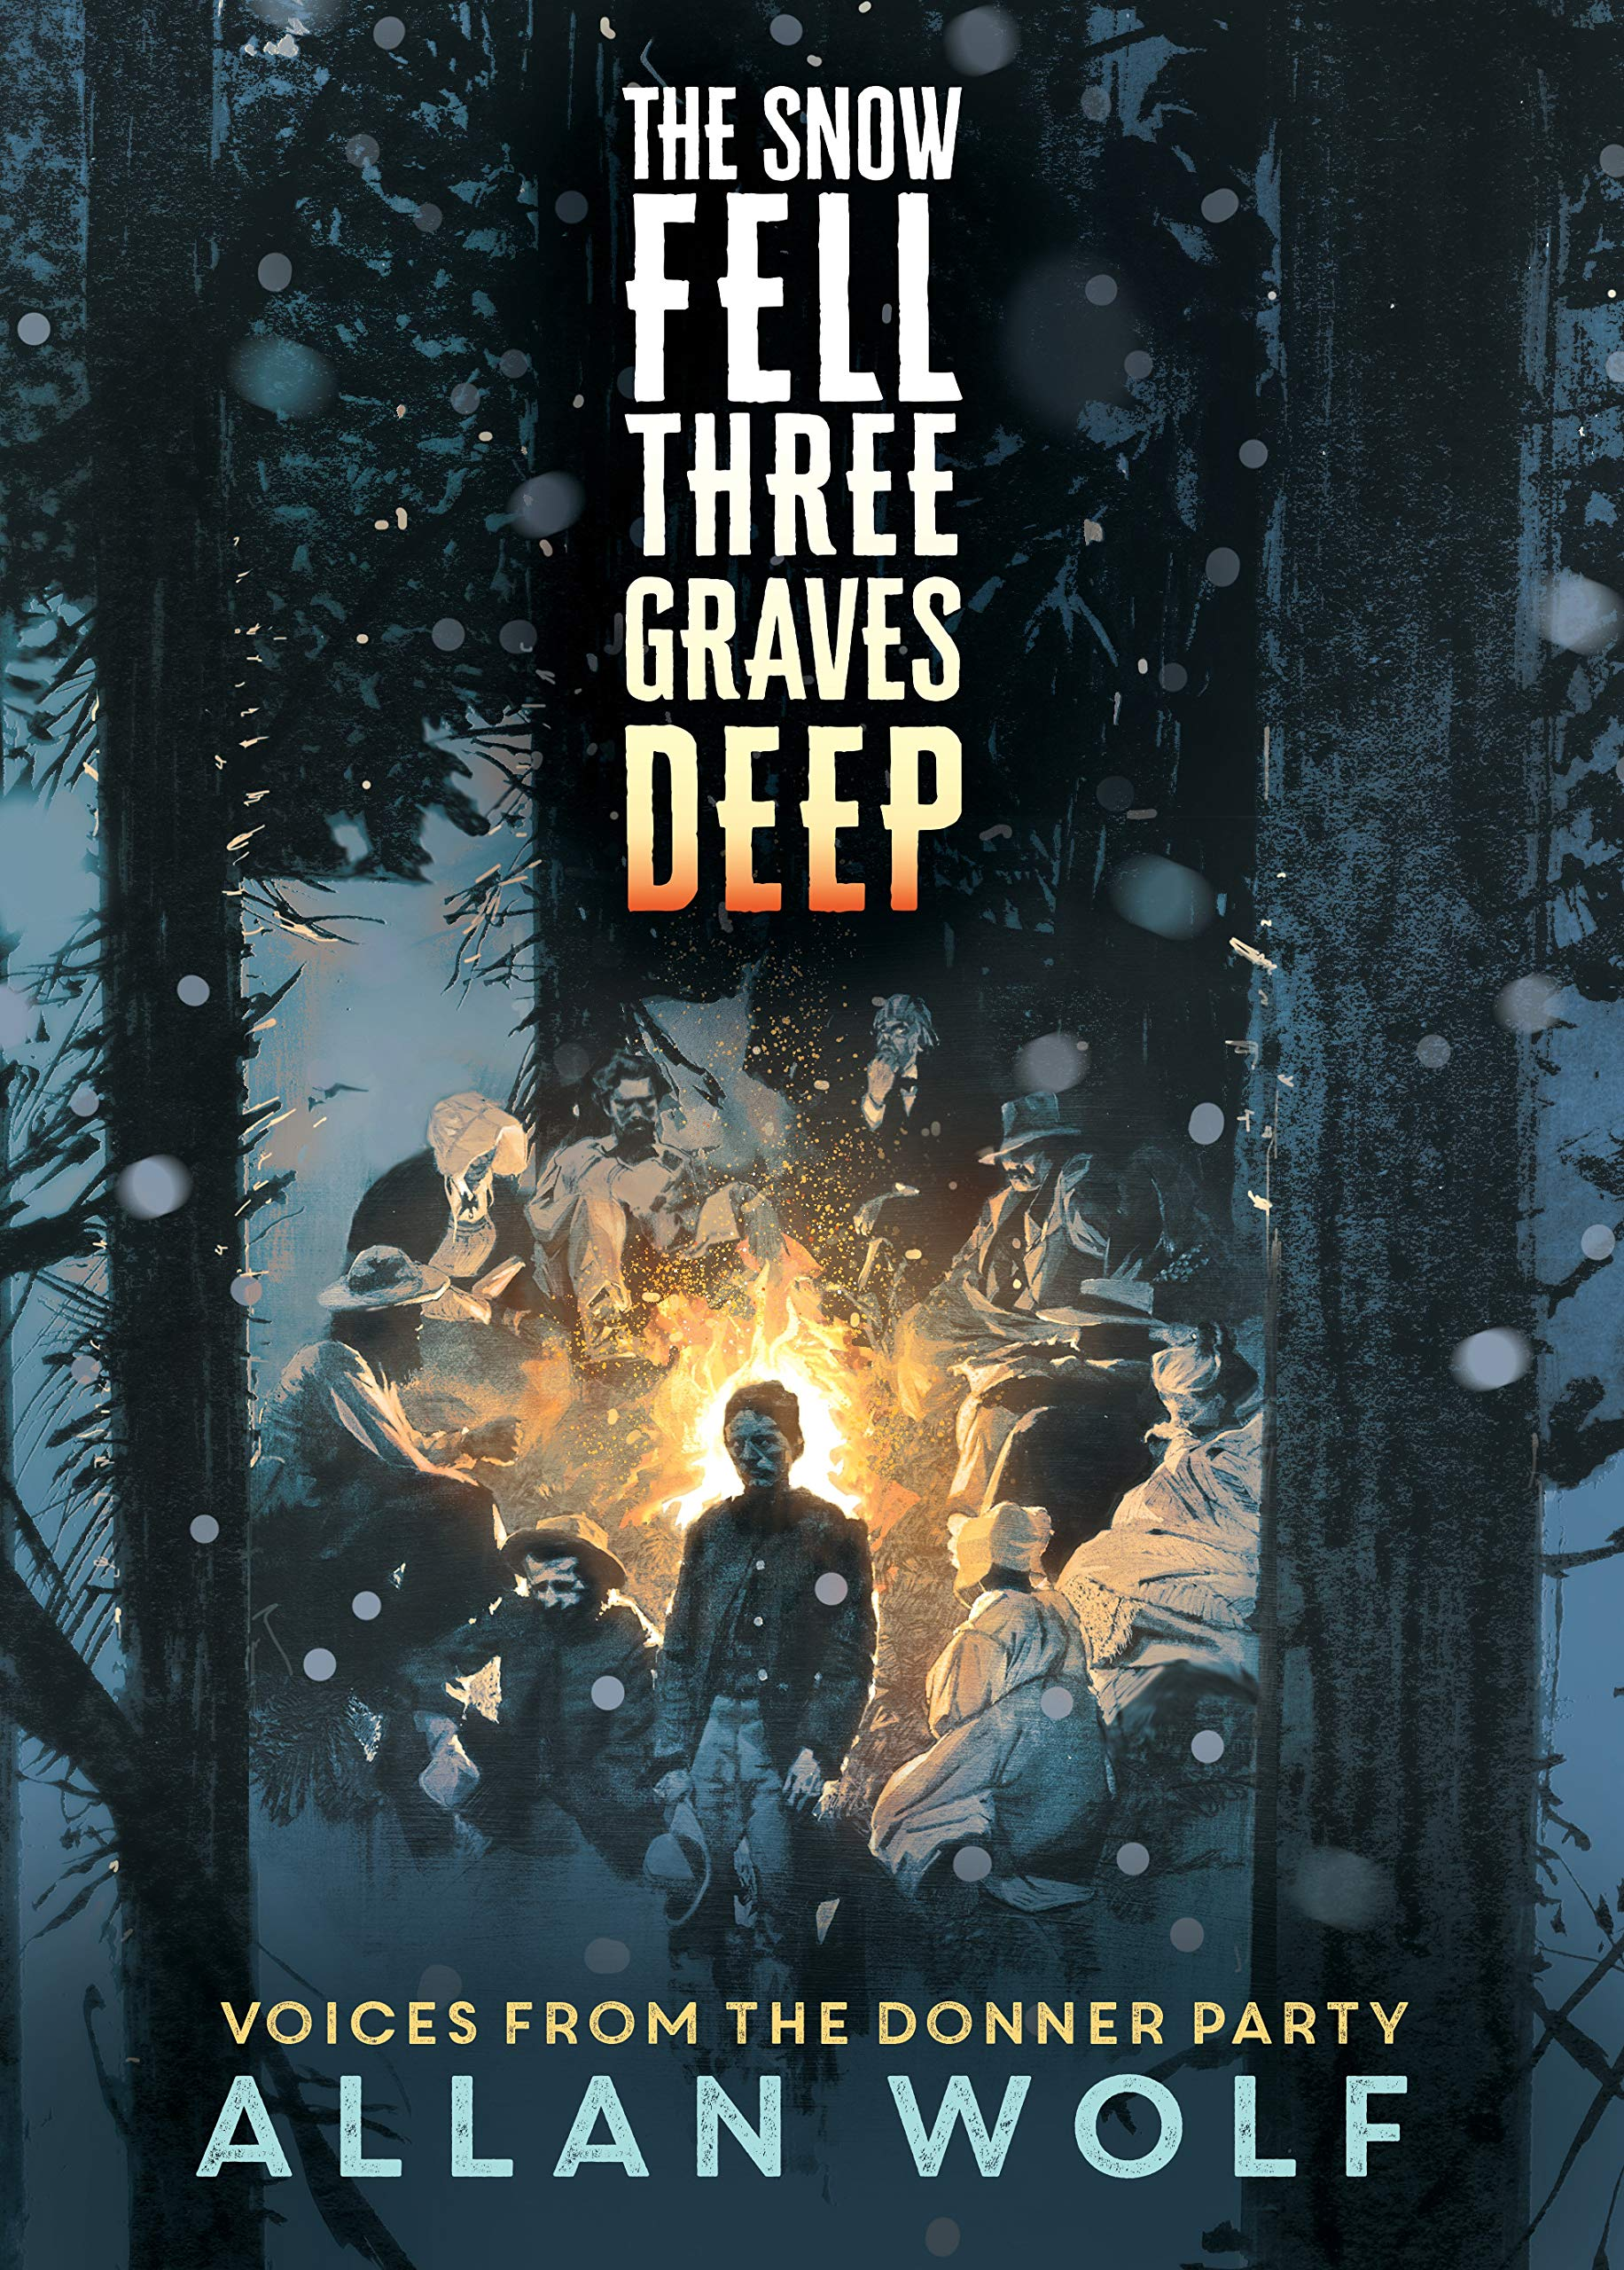 Amazon.com: The Snow Fell Three Graves Deep: Voices from the Donner Party  (9780763663247): Wolf, Allan: Books